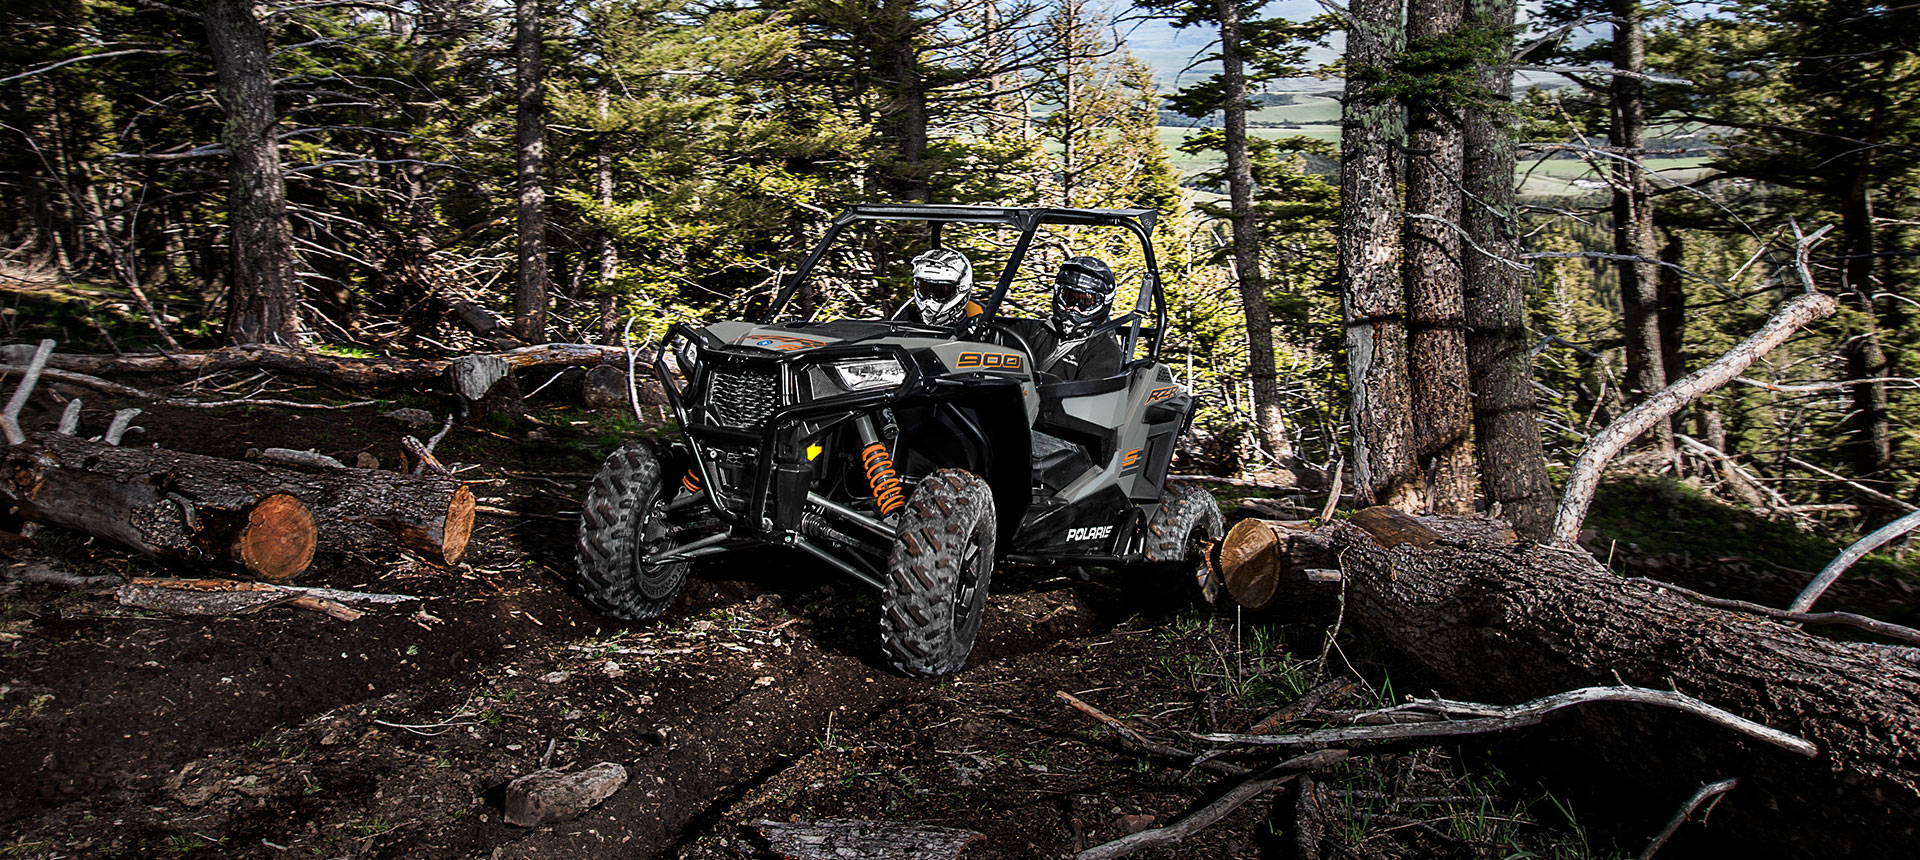 2019 Polaris RZR S 900 EPS in Utica, New York - Photo 2